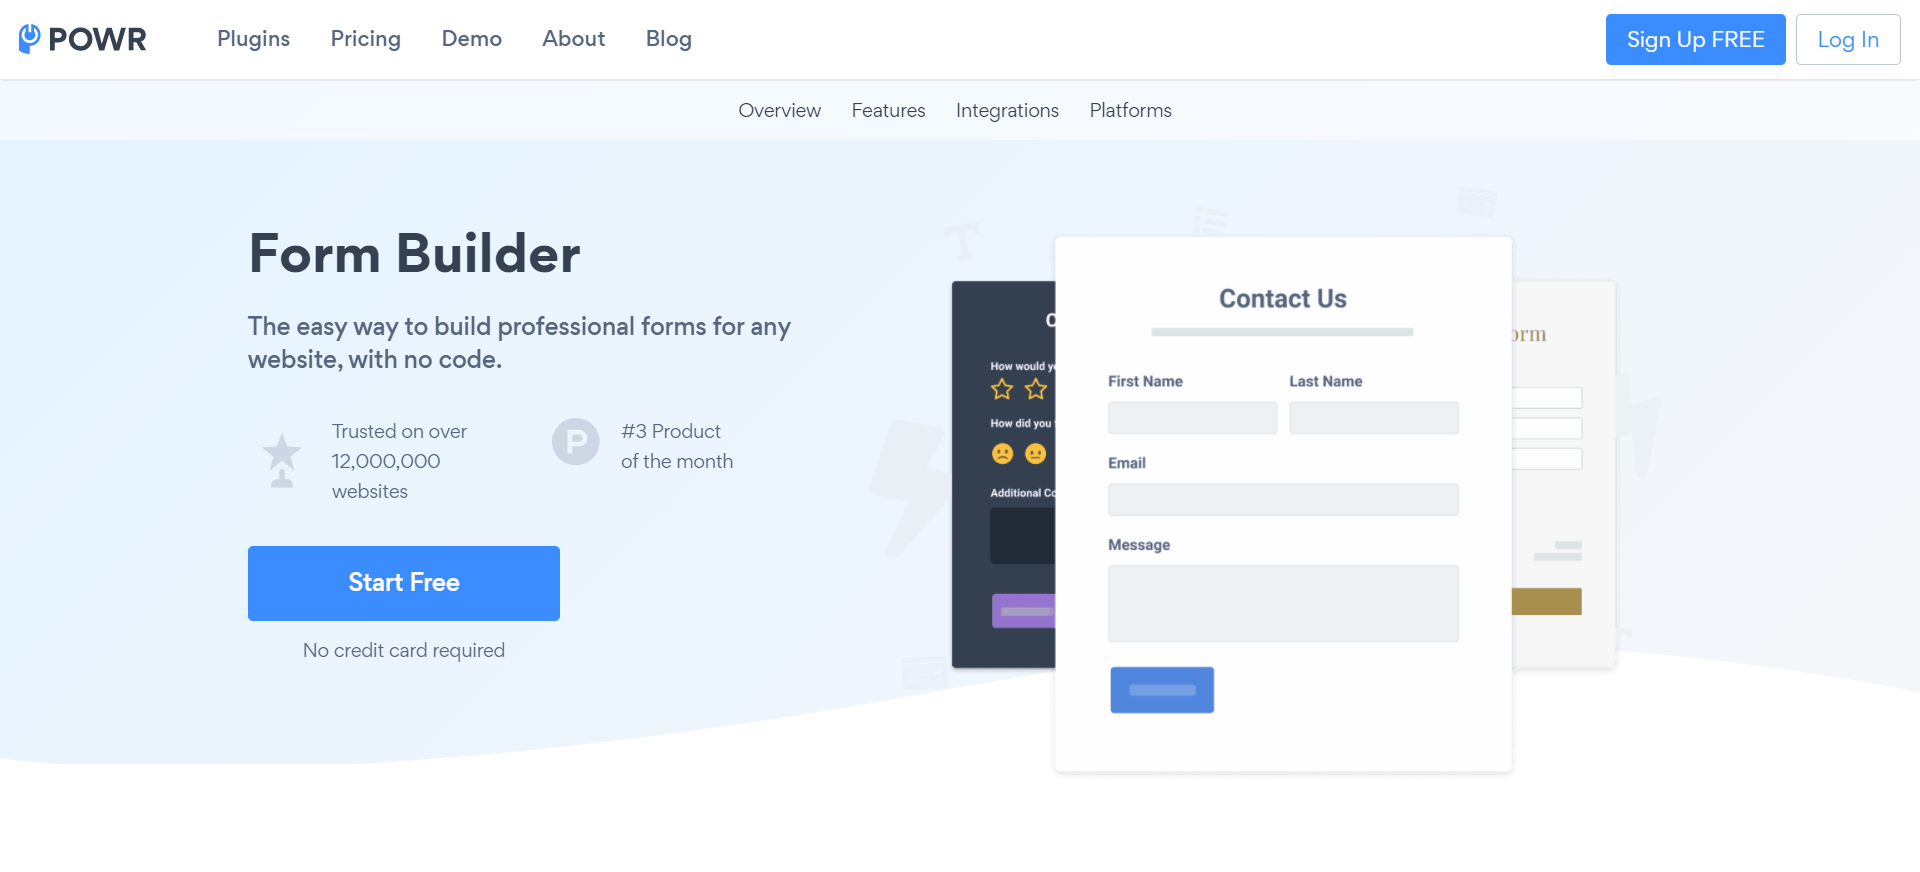 Form Builder & Payments (POWR): Wix App